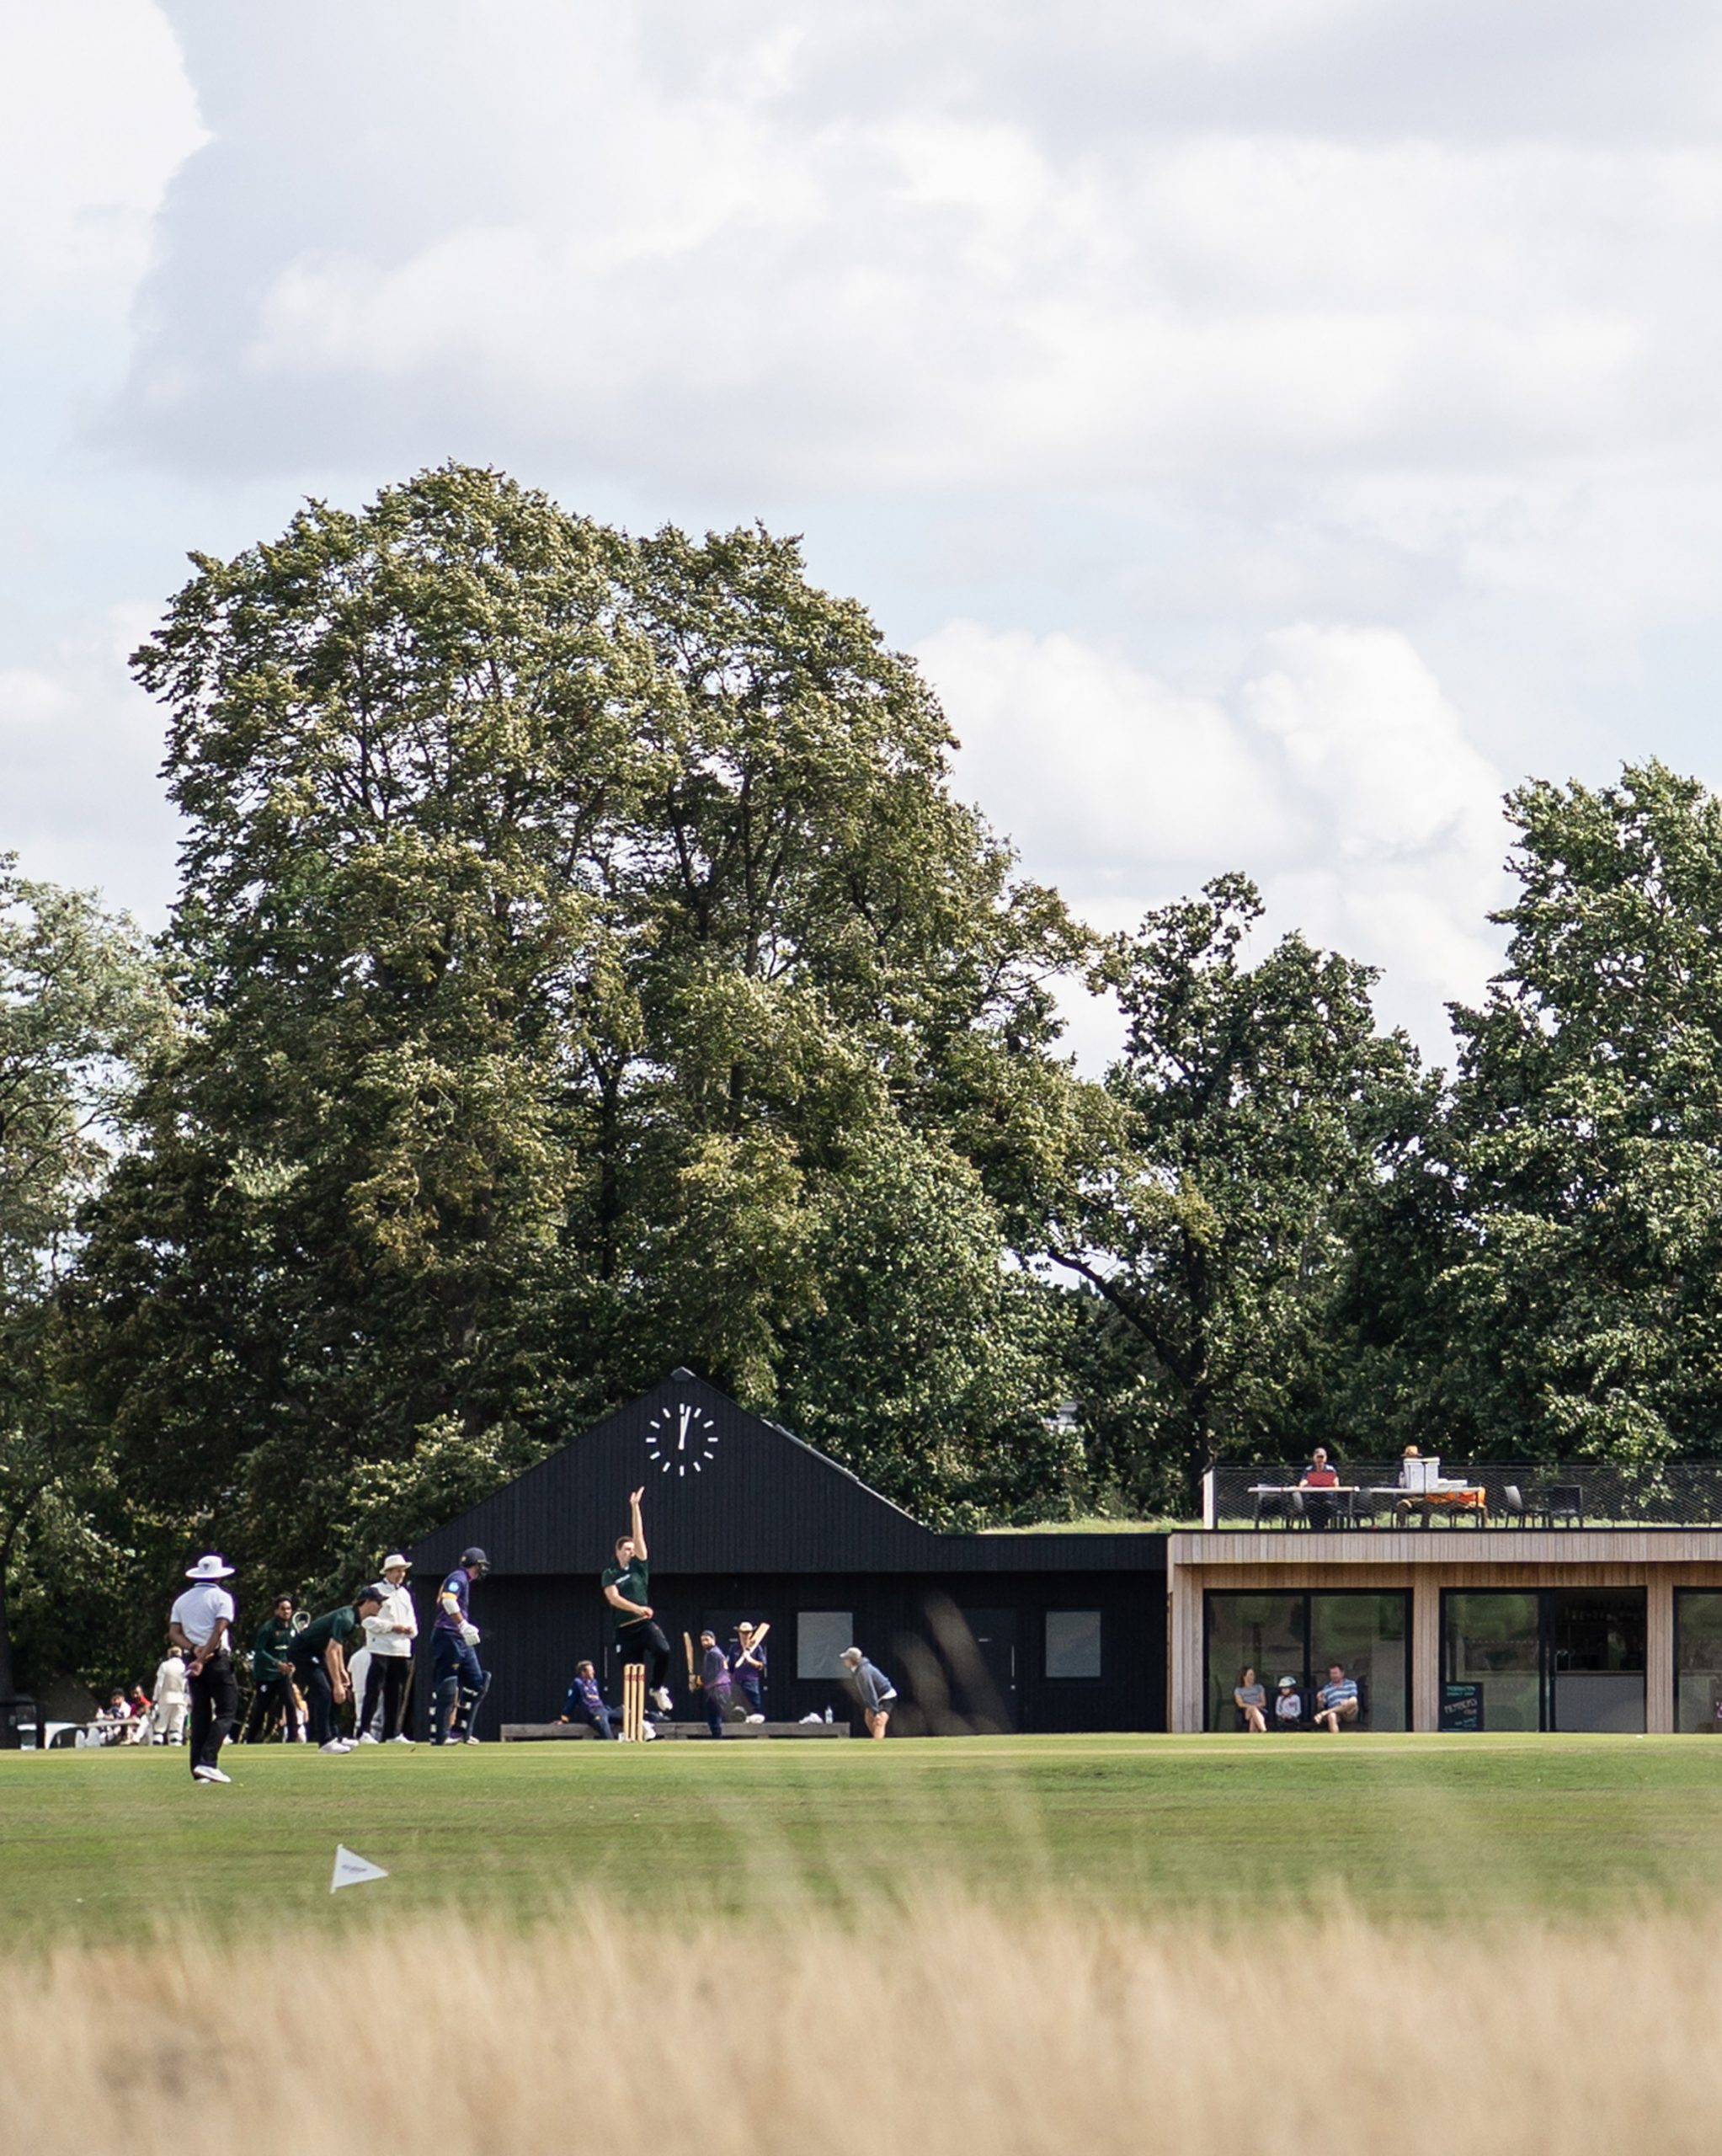 Cricket pavilion with roof top terrace